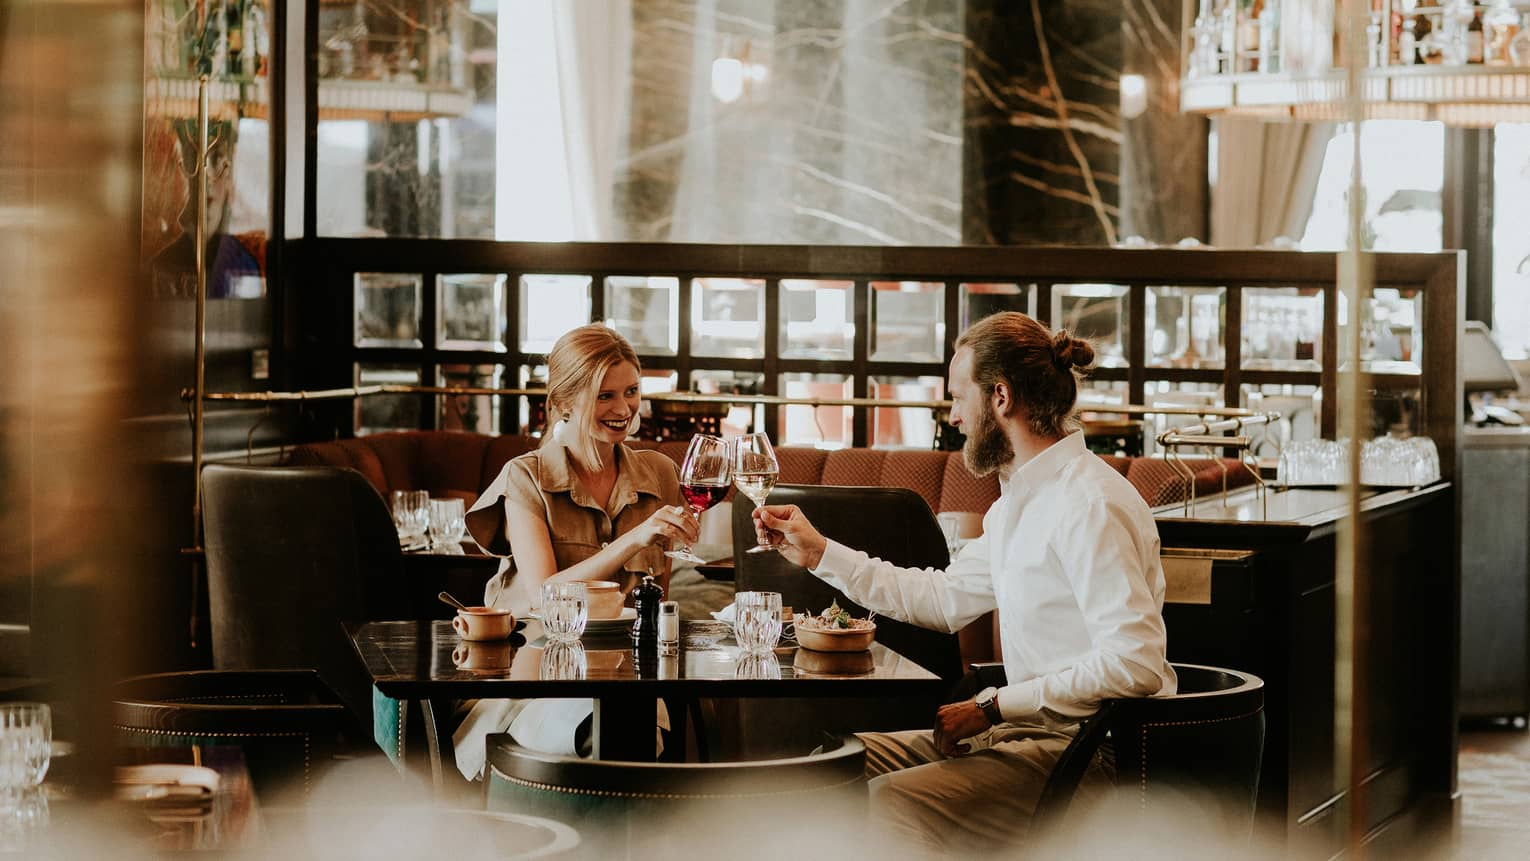 Smiling couple at table toasts with wine glasses in restaurant lounge